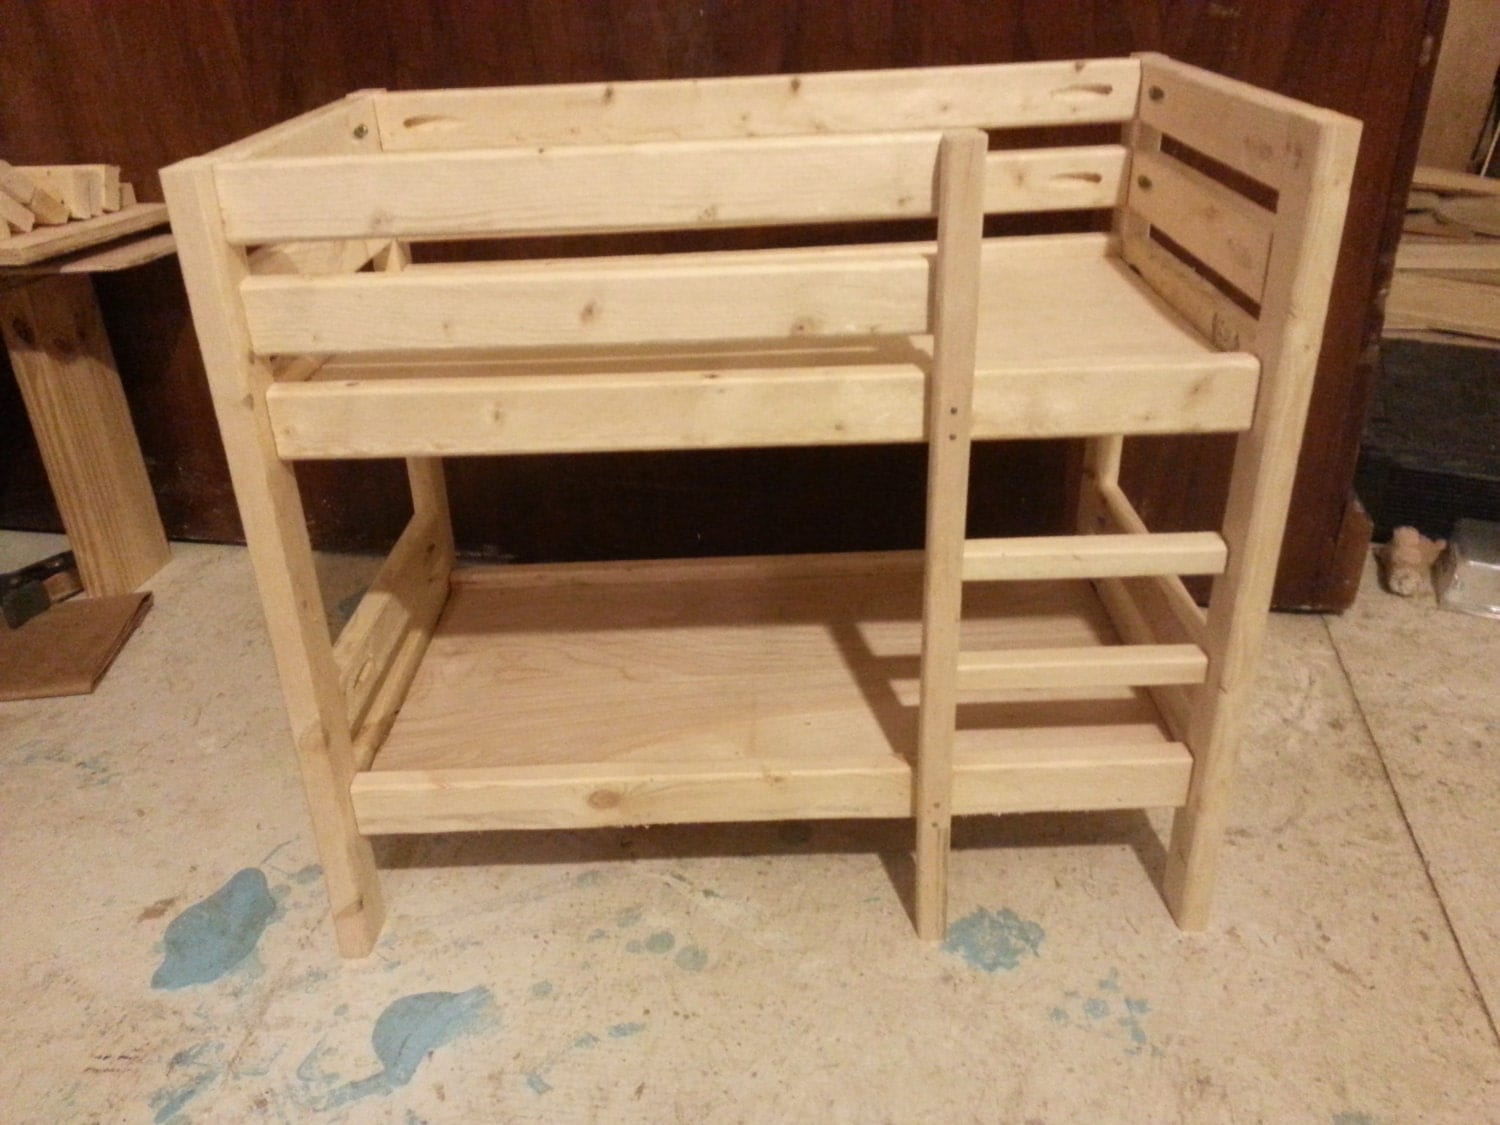 Wonderful image of Wooden Doll Bunk Bed for 18 Dolls or smaller by KaseysKustomKrafts with #381B0E color and 1500x1125 pixels